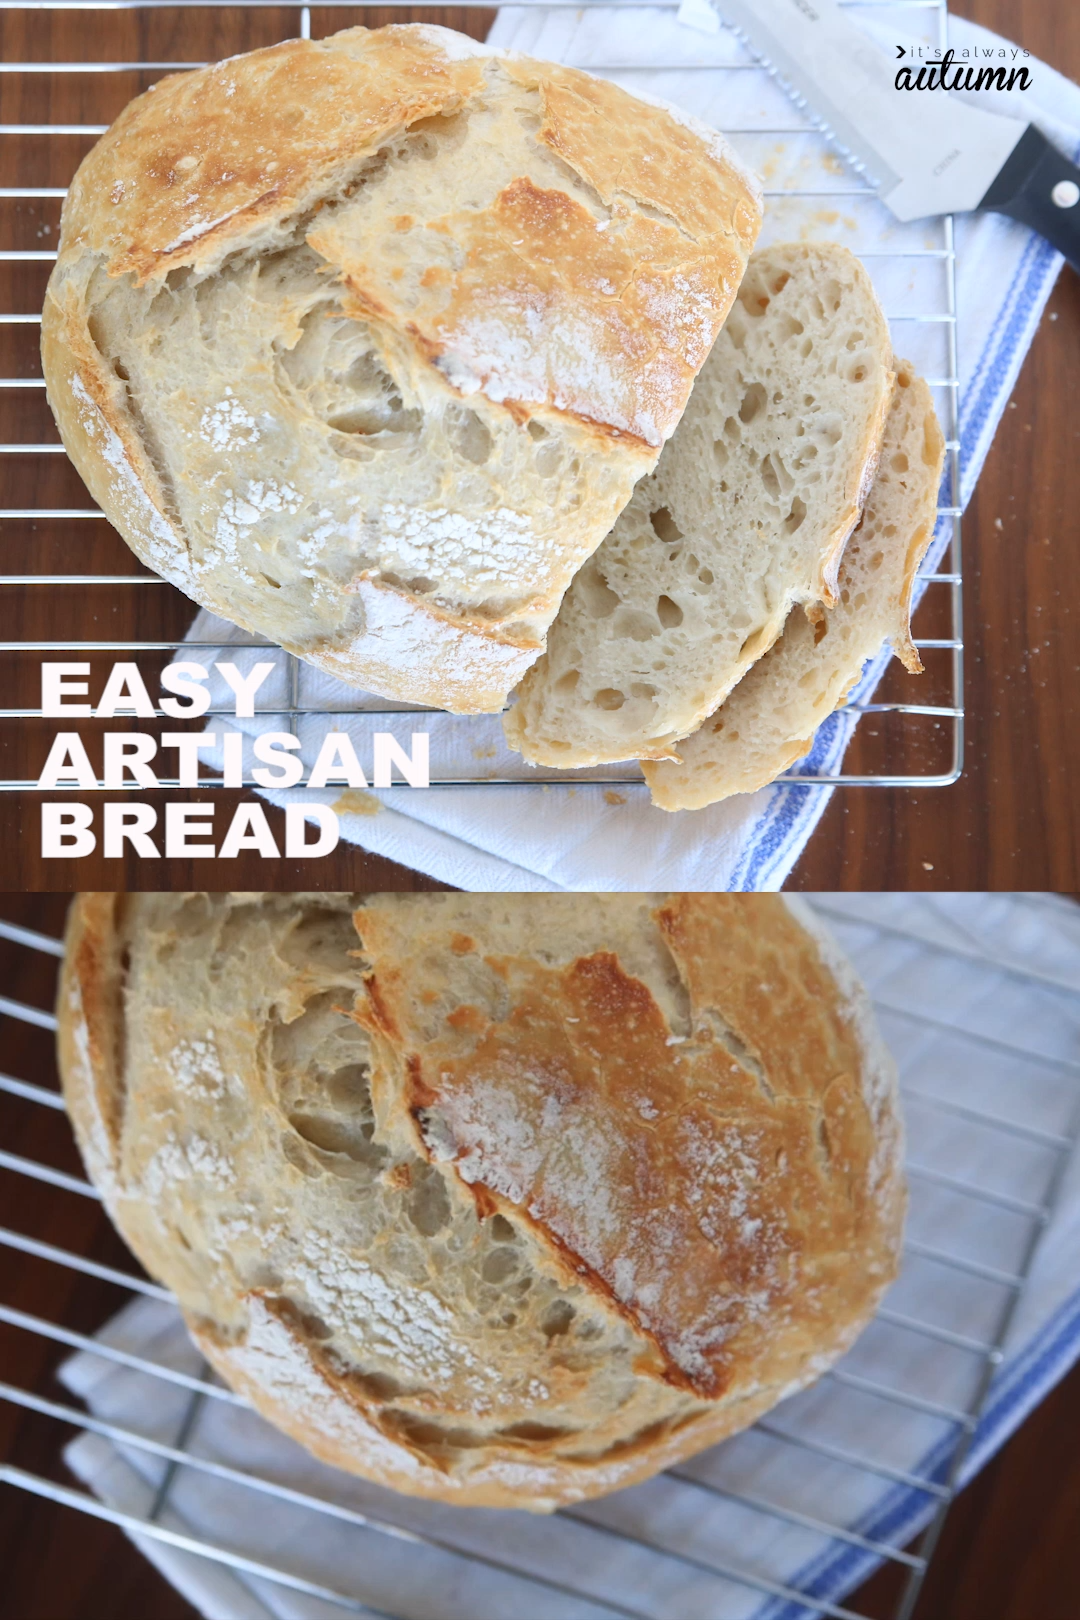 This is the easiest bread you'll ever make! Only 4 ingredients and no kneading. ANYONE can make this bread, and it turns out looking like it came from a fancy bakery. Plus it's simply delicious. #artisanbread #nokneadbread #easybread